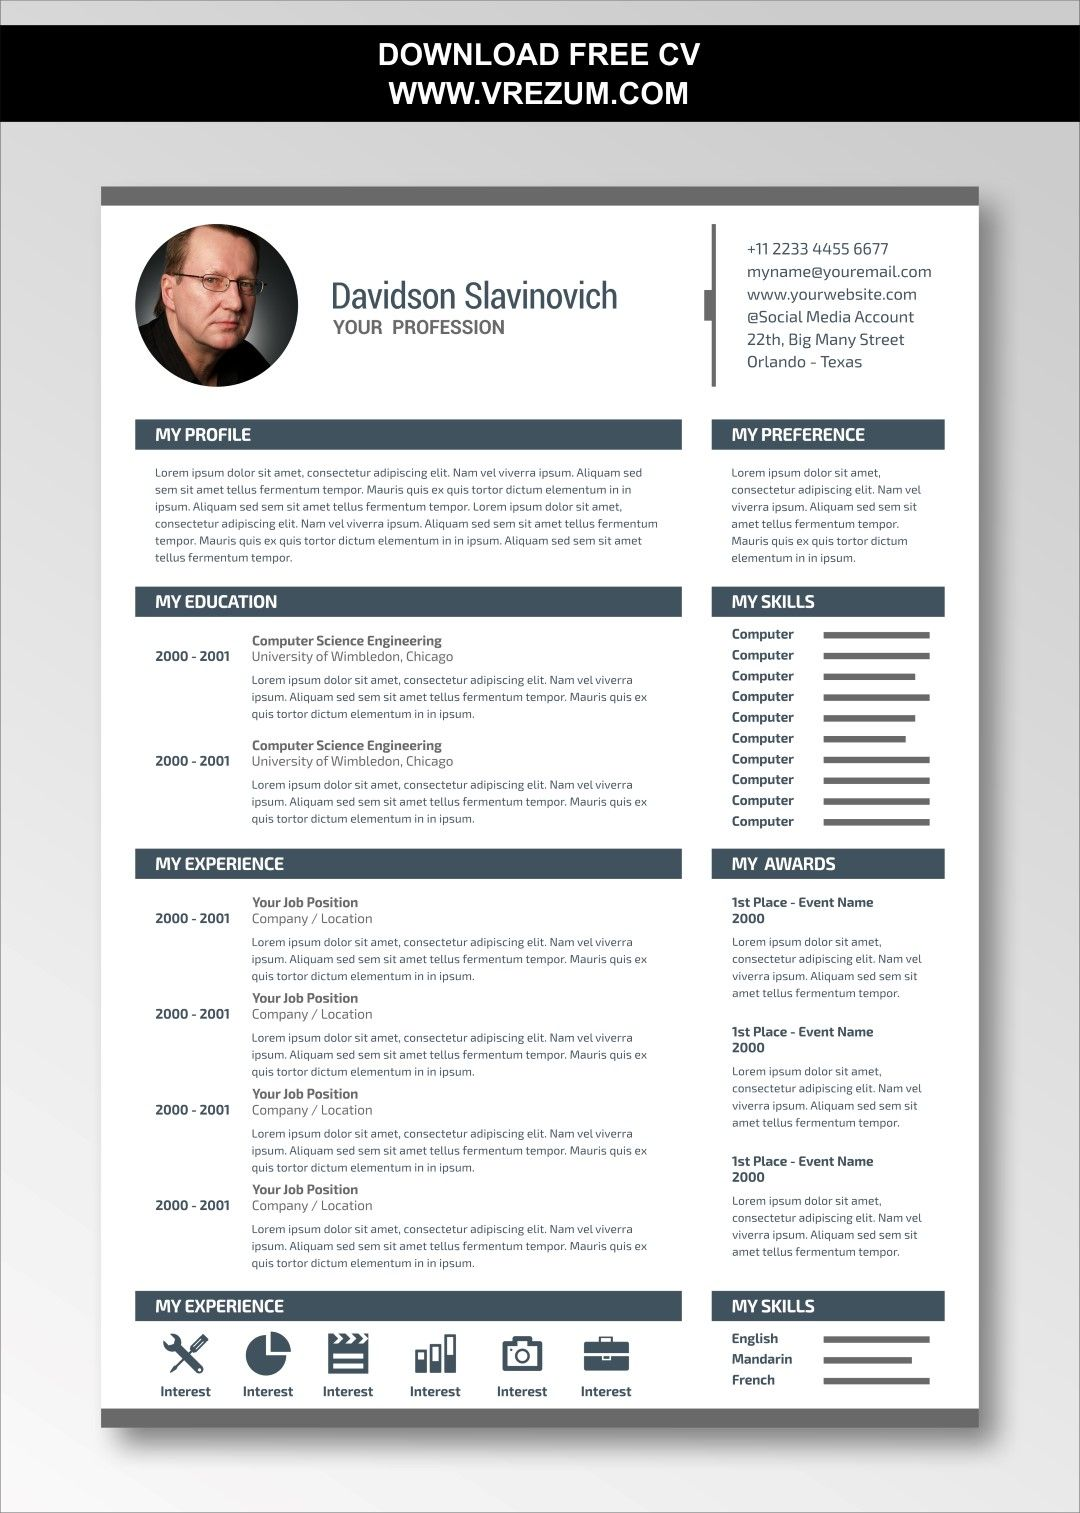 (EDITABLE) FREE CV Templates For Construction Worker in